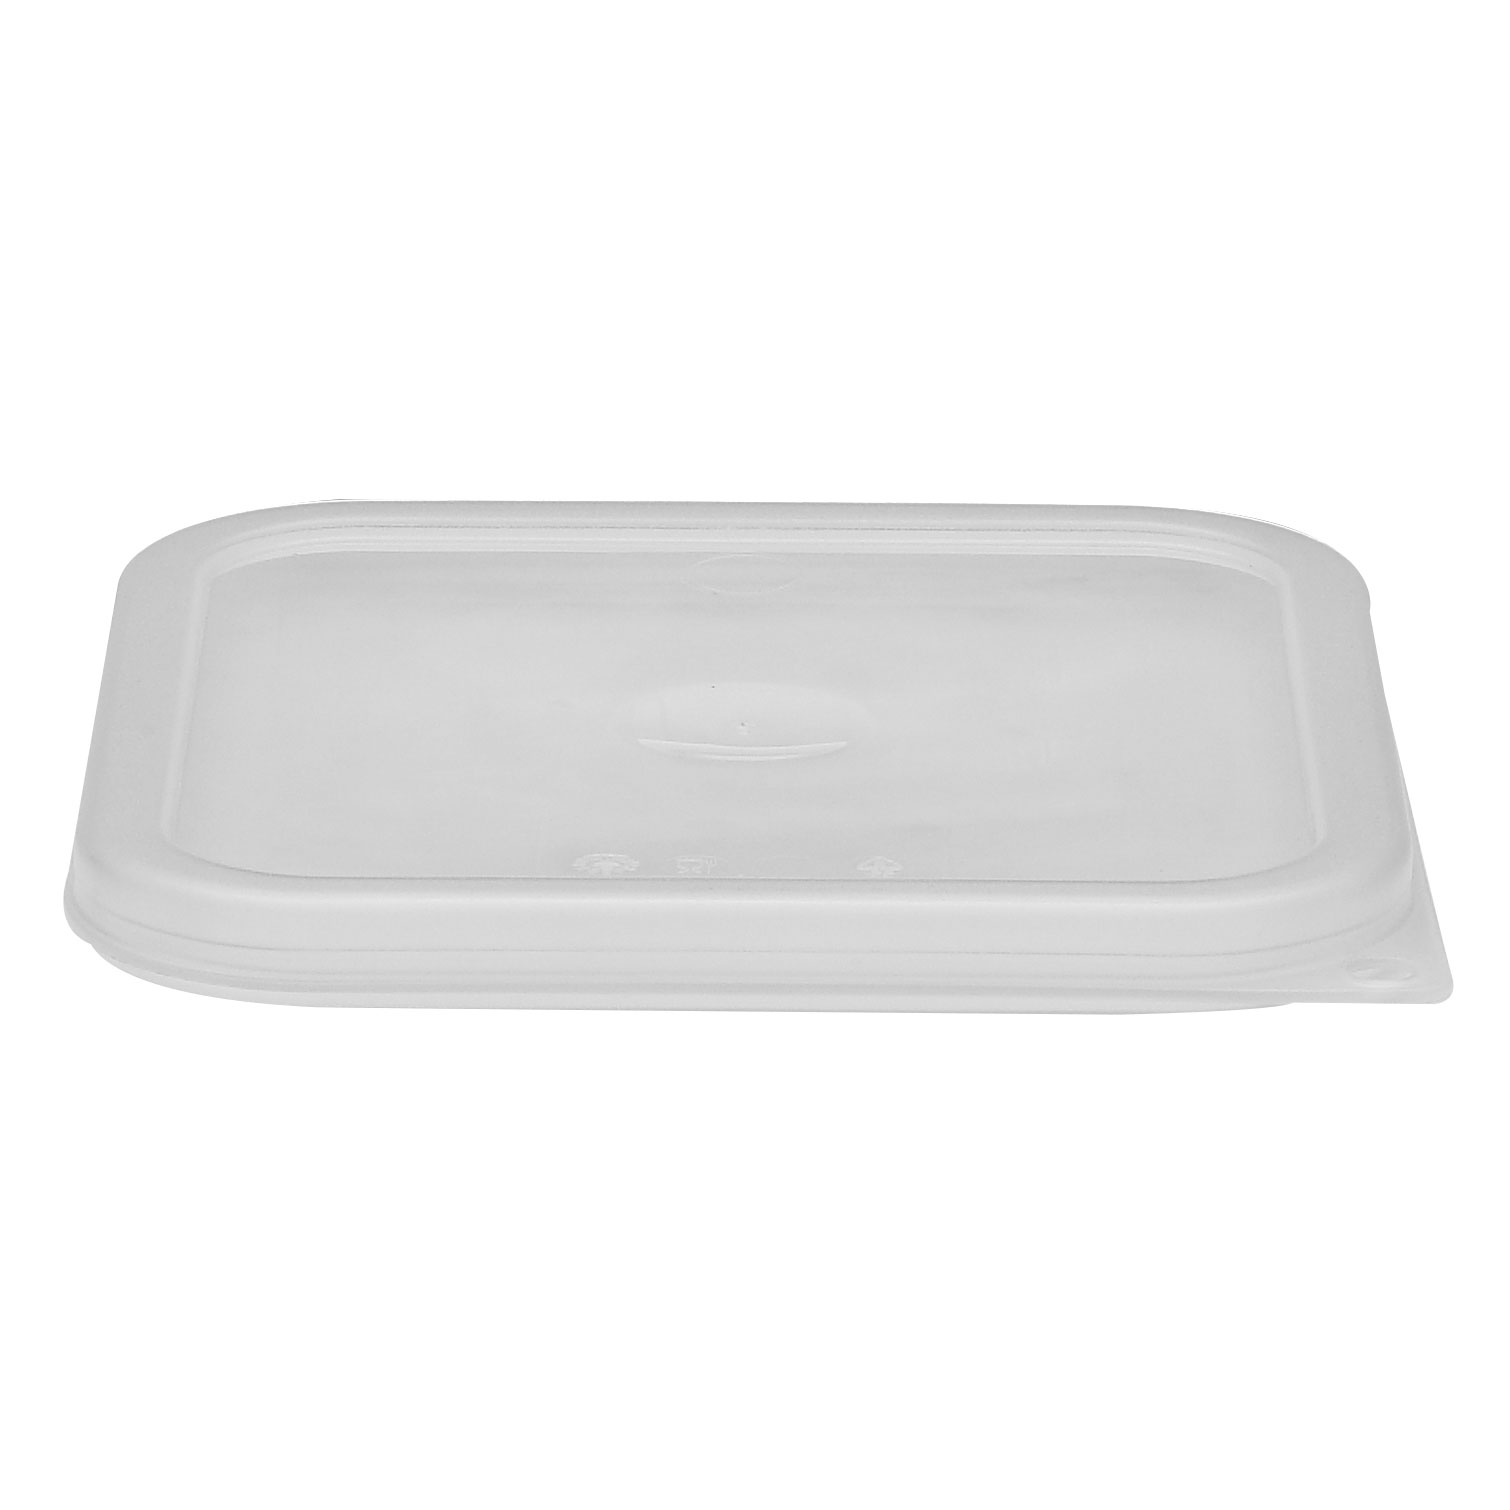 Cambro SFC12SCPP190 food storage container cover